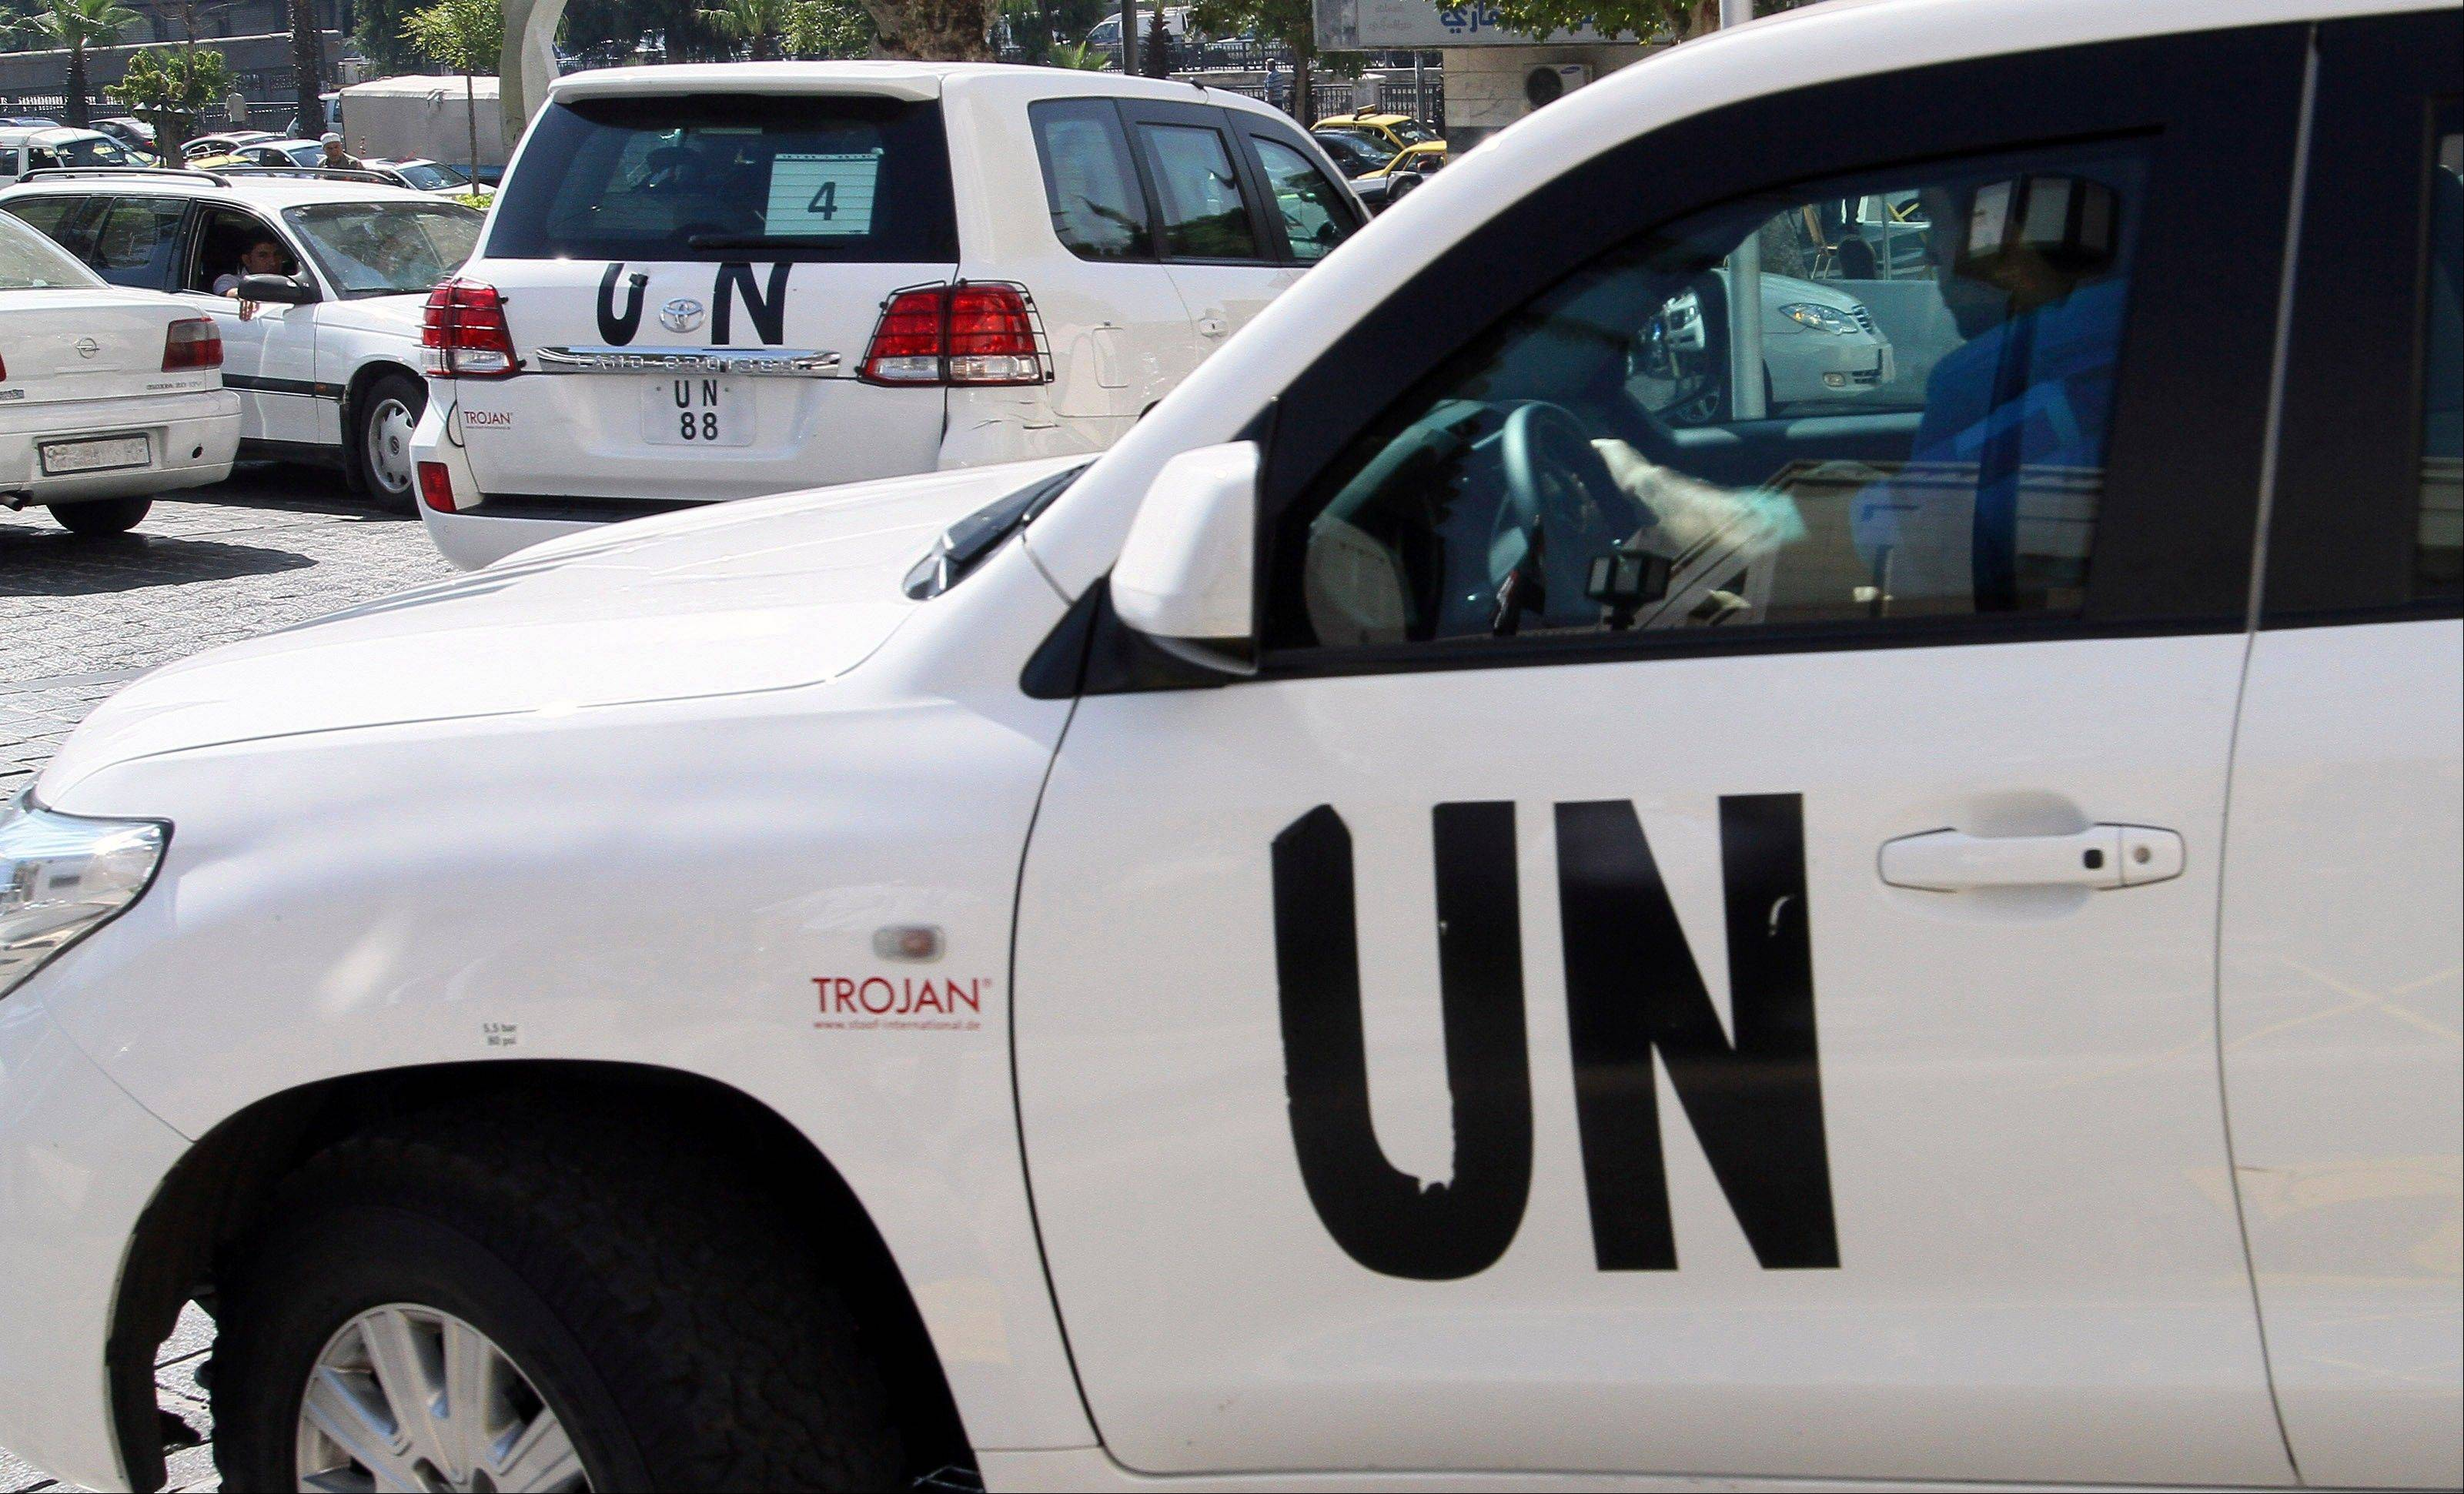 U.N. chemical weapons experts who are investigating last week's suspected poison gas attack on Syrian civilians leave a hotel Wednesday and are expected to visit the site near Damascus, Syria. United Nations Secretary-General Ban Ki-moon pleaded for a diplomatic solution to the Syrian conflict, even as world powers appeared to be moving toward punitive military strikes against President Bashar Assad's regime for what the United States and its allies say was a deadly chemical weapons attack. Syria has denied it was behind the alleged attack.